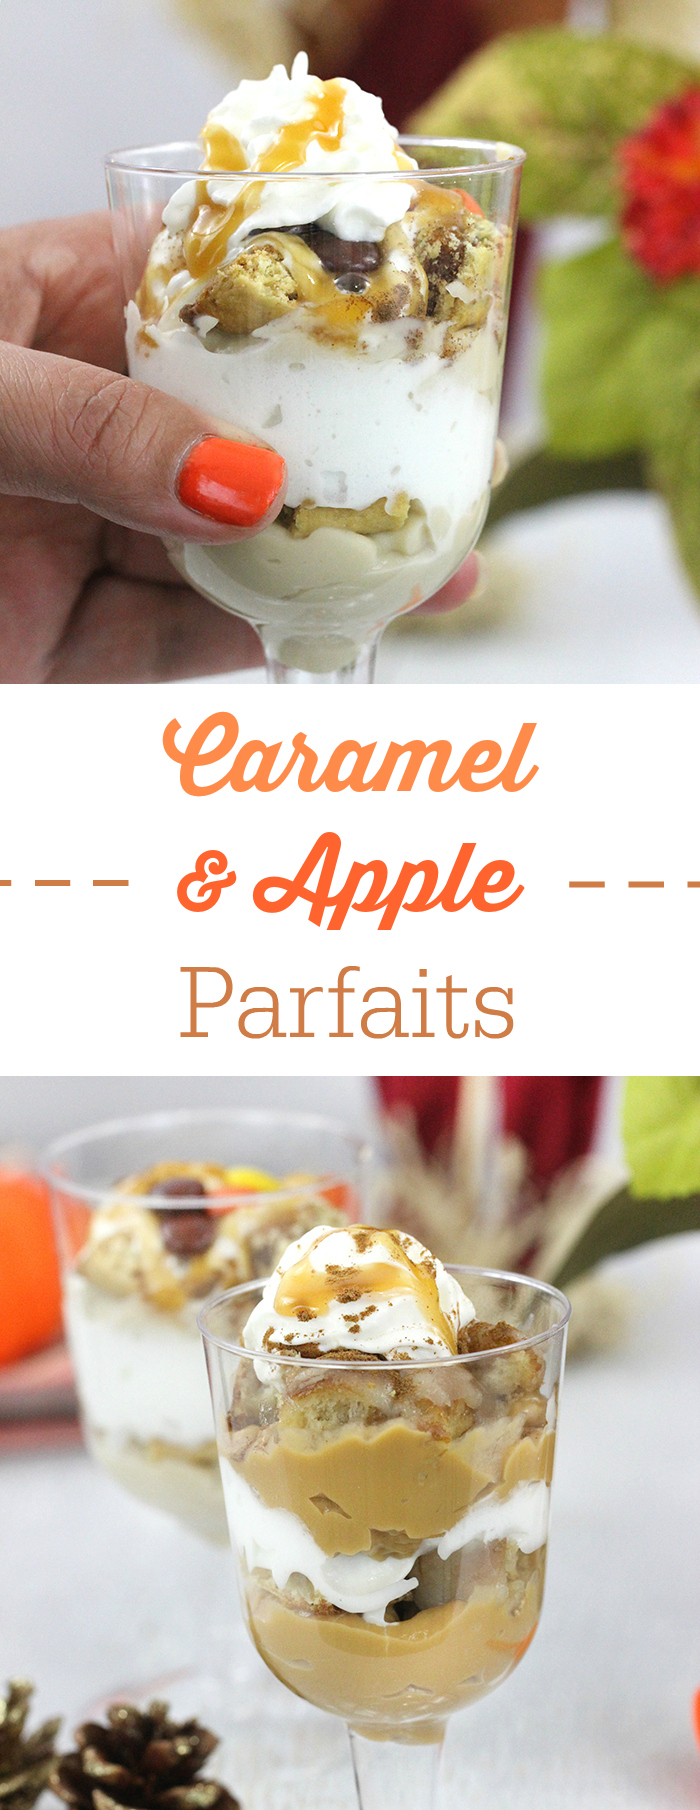 Caramel Apple Parfaits that make for the perfect Harvest Desserts. Simple budget friendly ingredients.